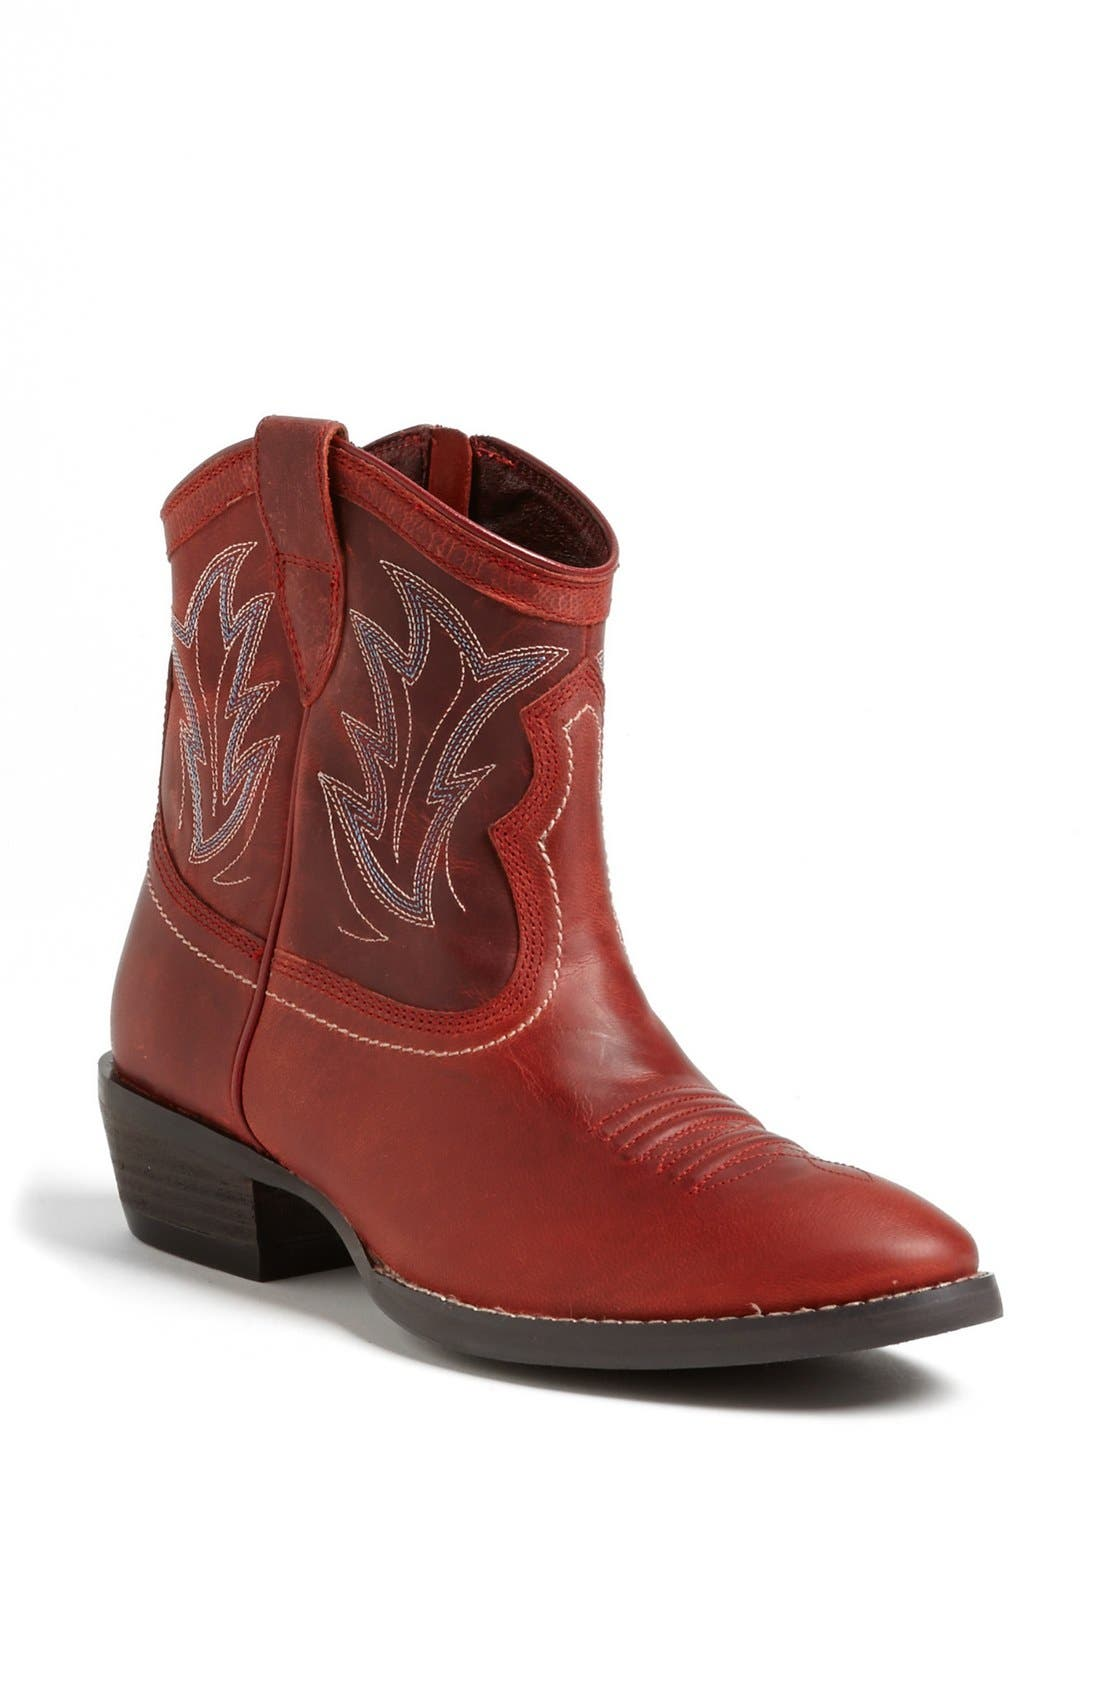 Main Image - Ariat 'Billie' Boot